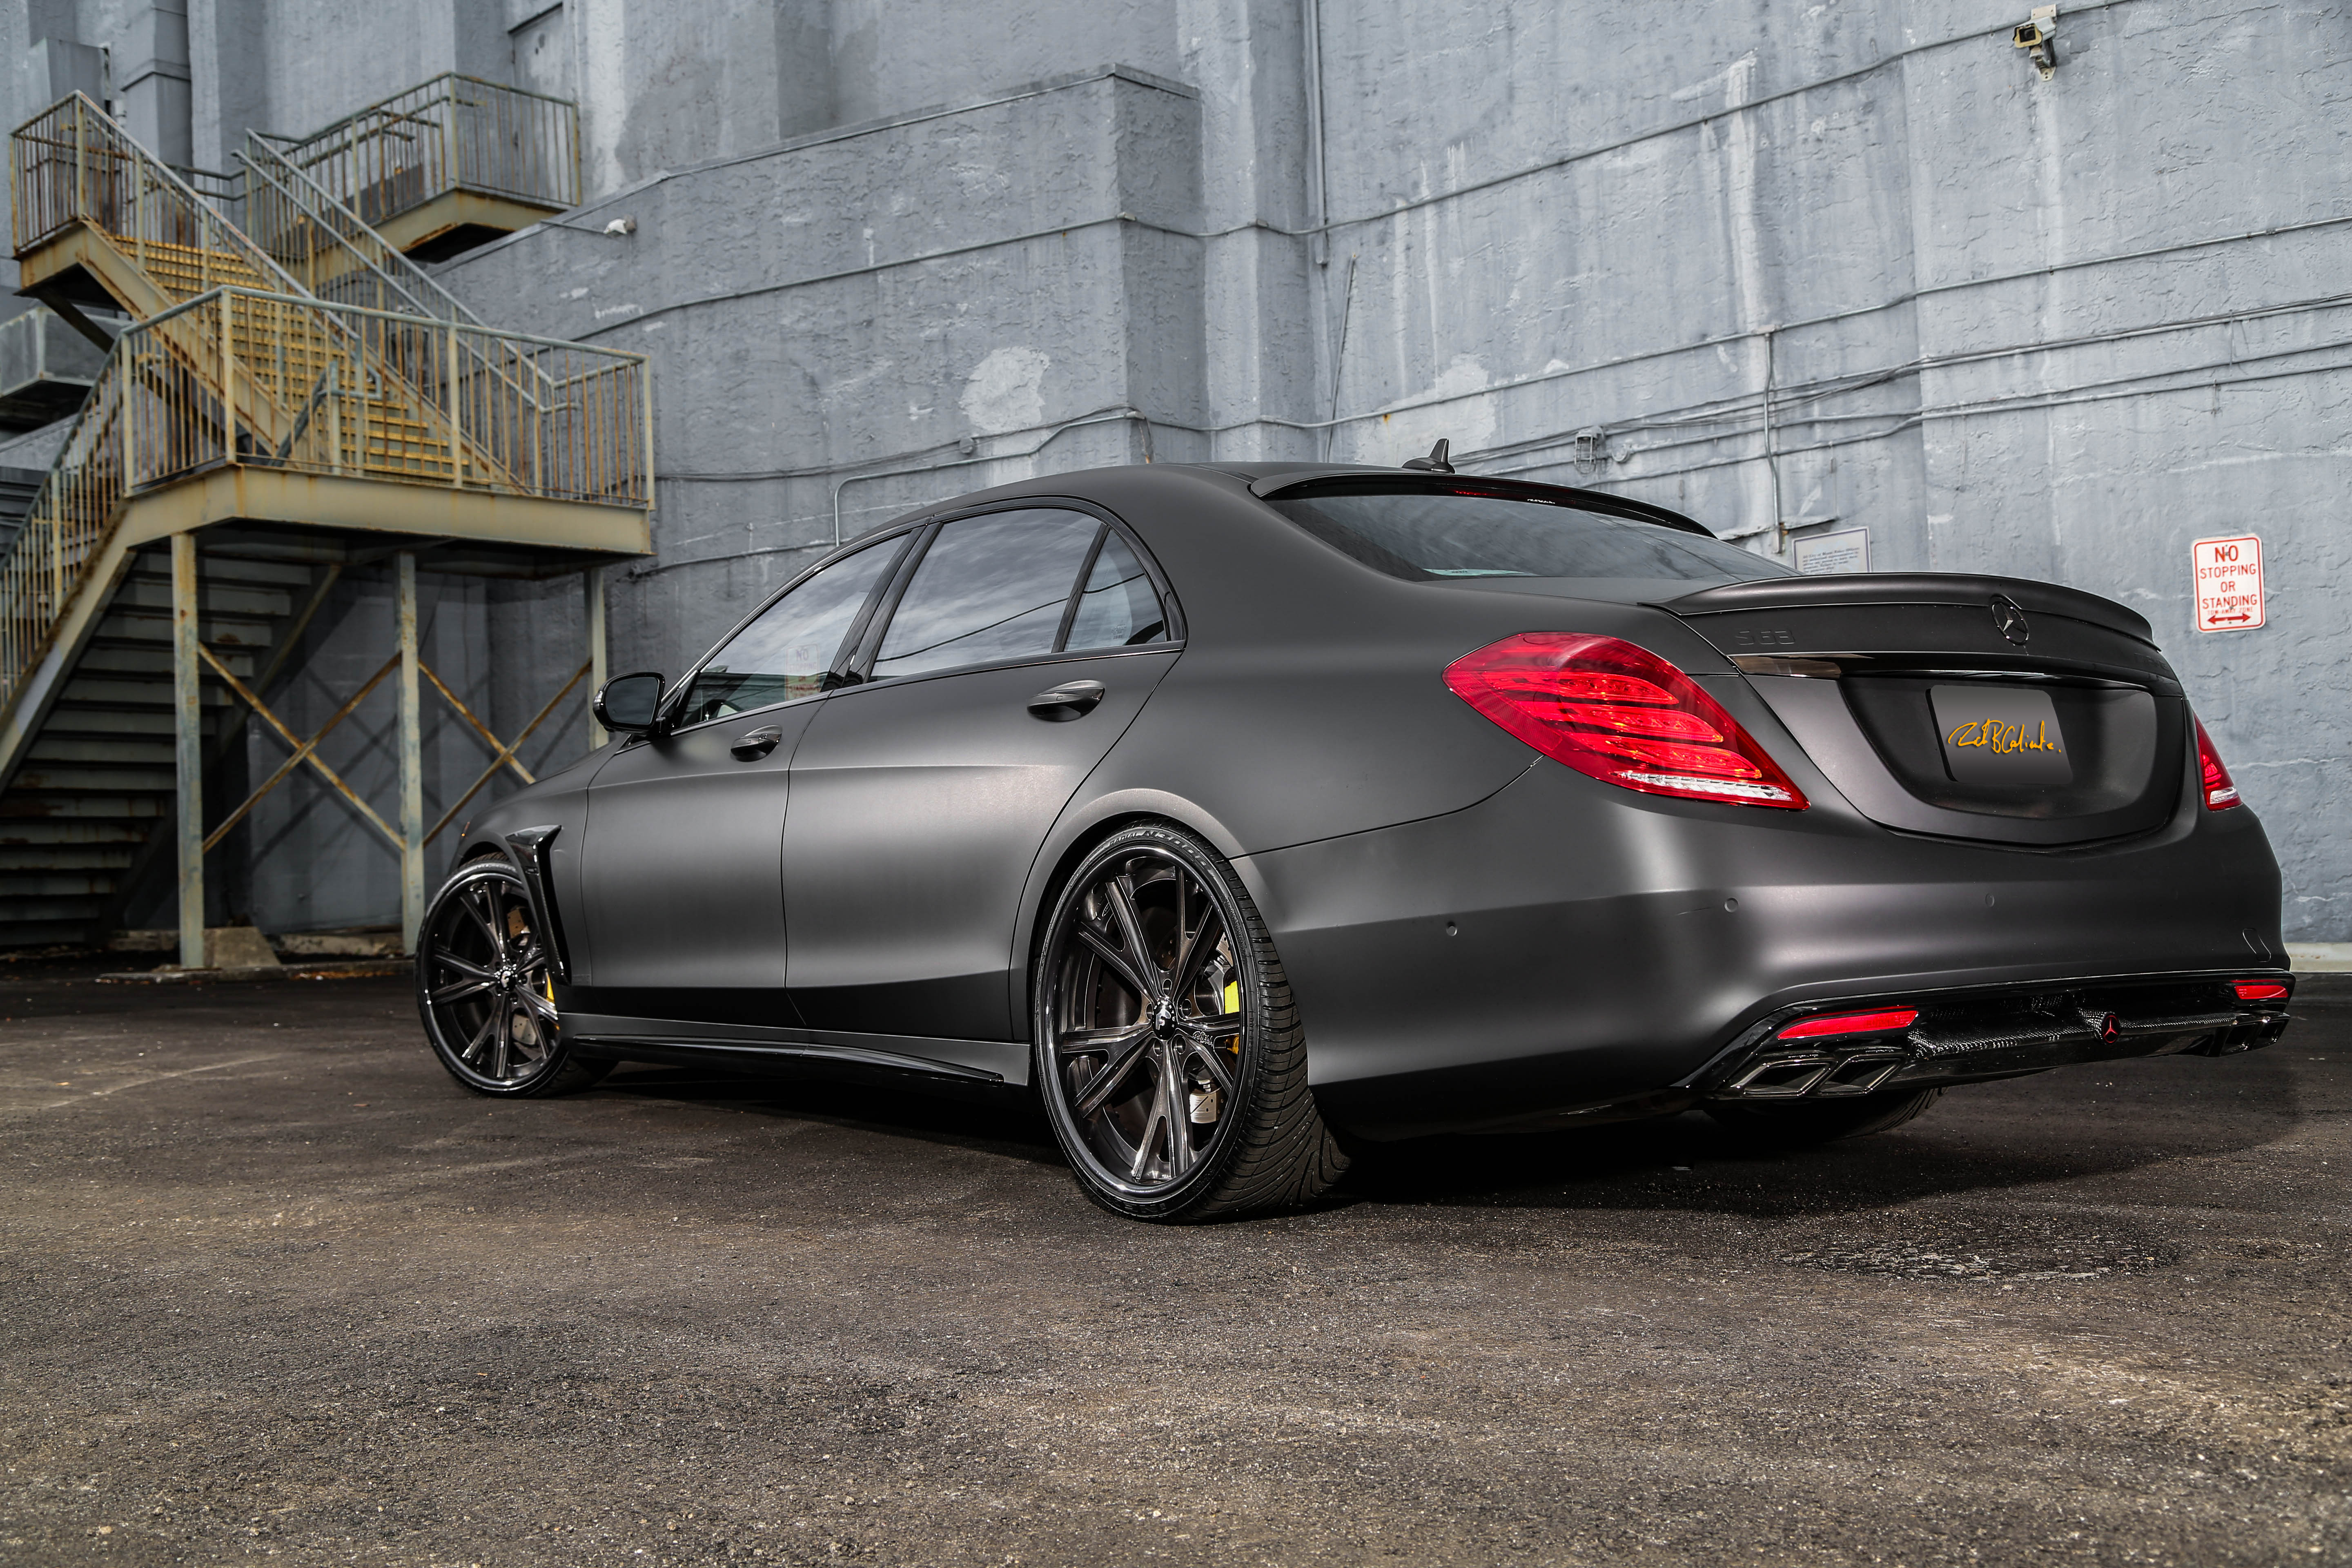 Mercedes Benz S63 Amg W 23k Gold Calipers Rides Magazine